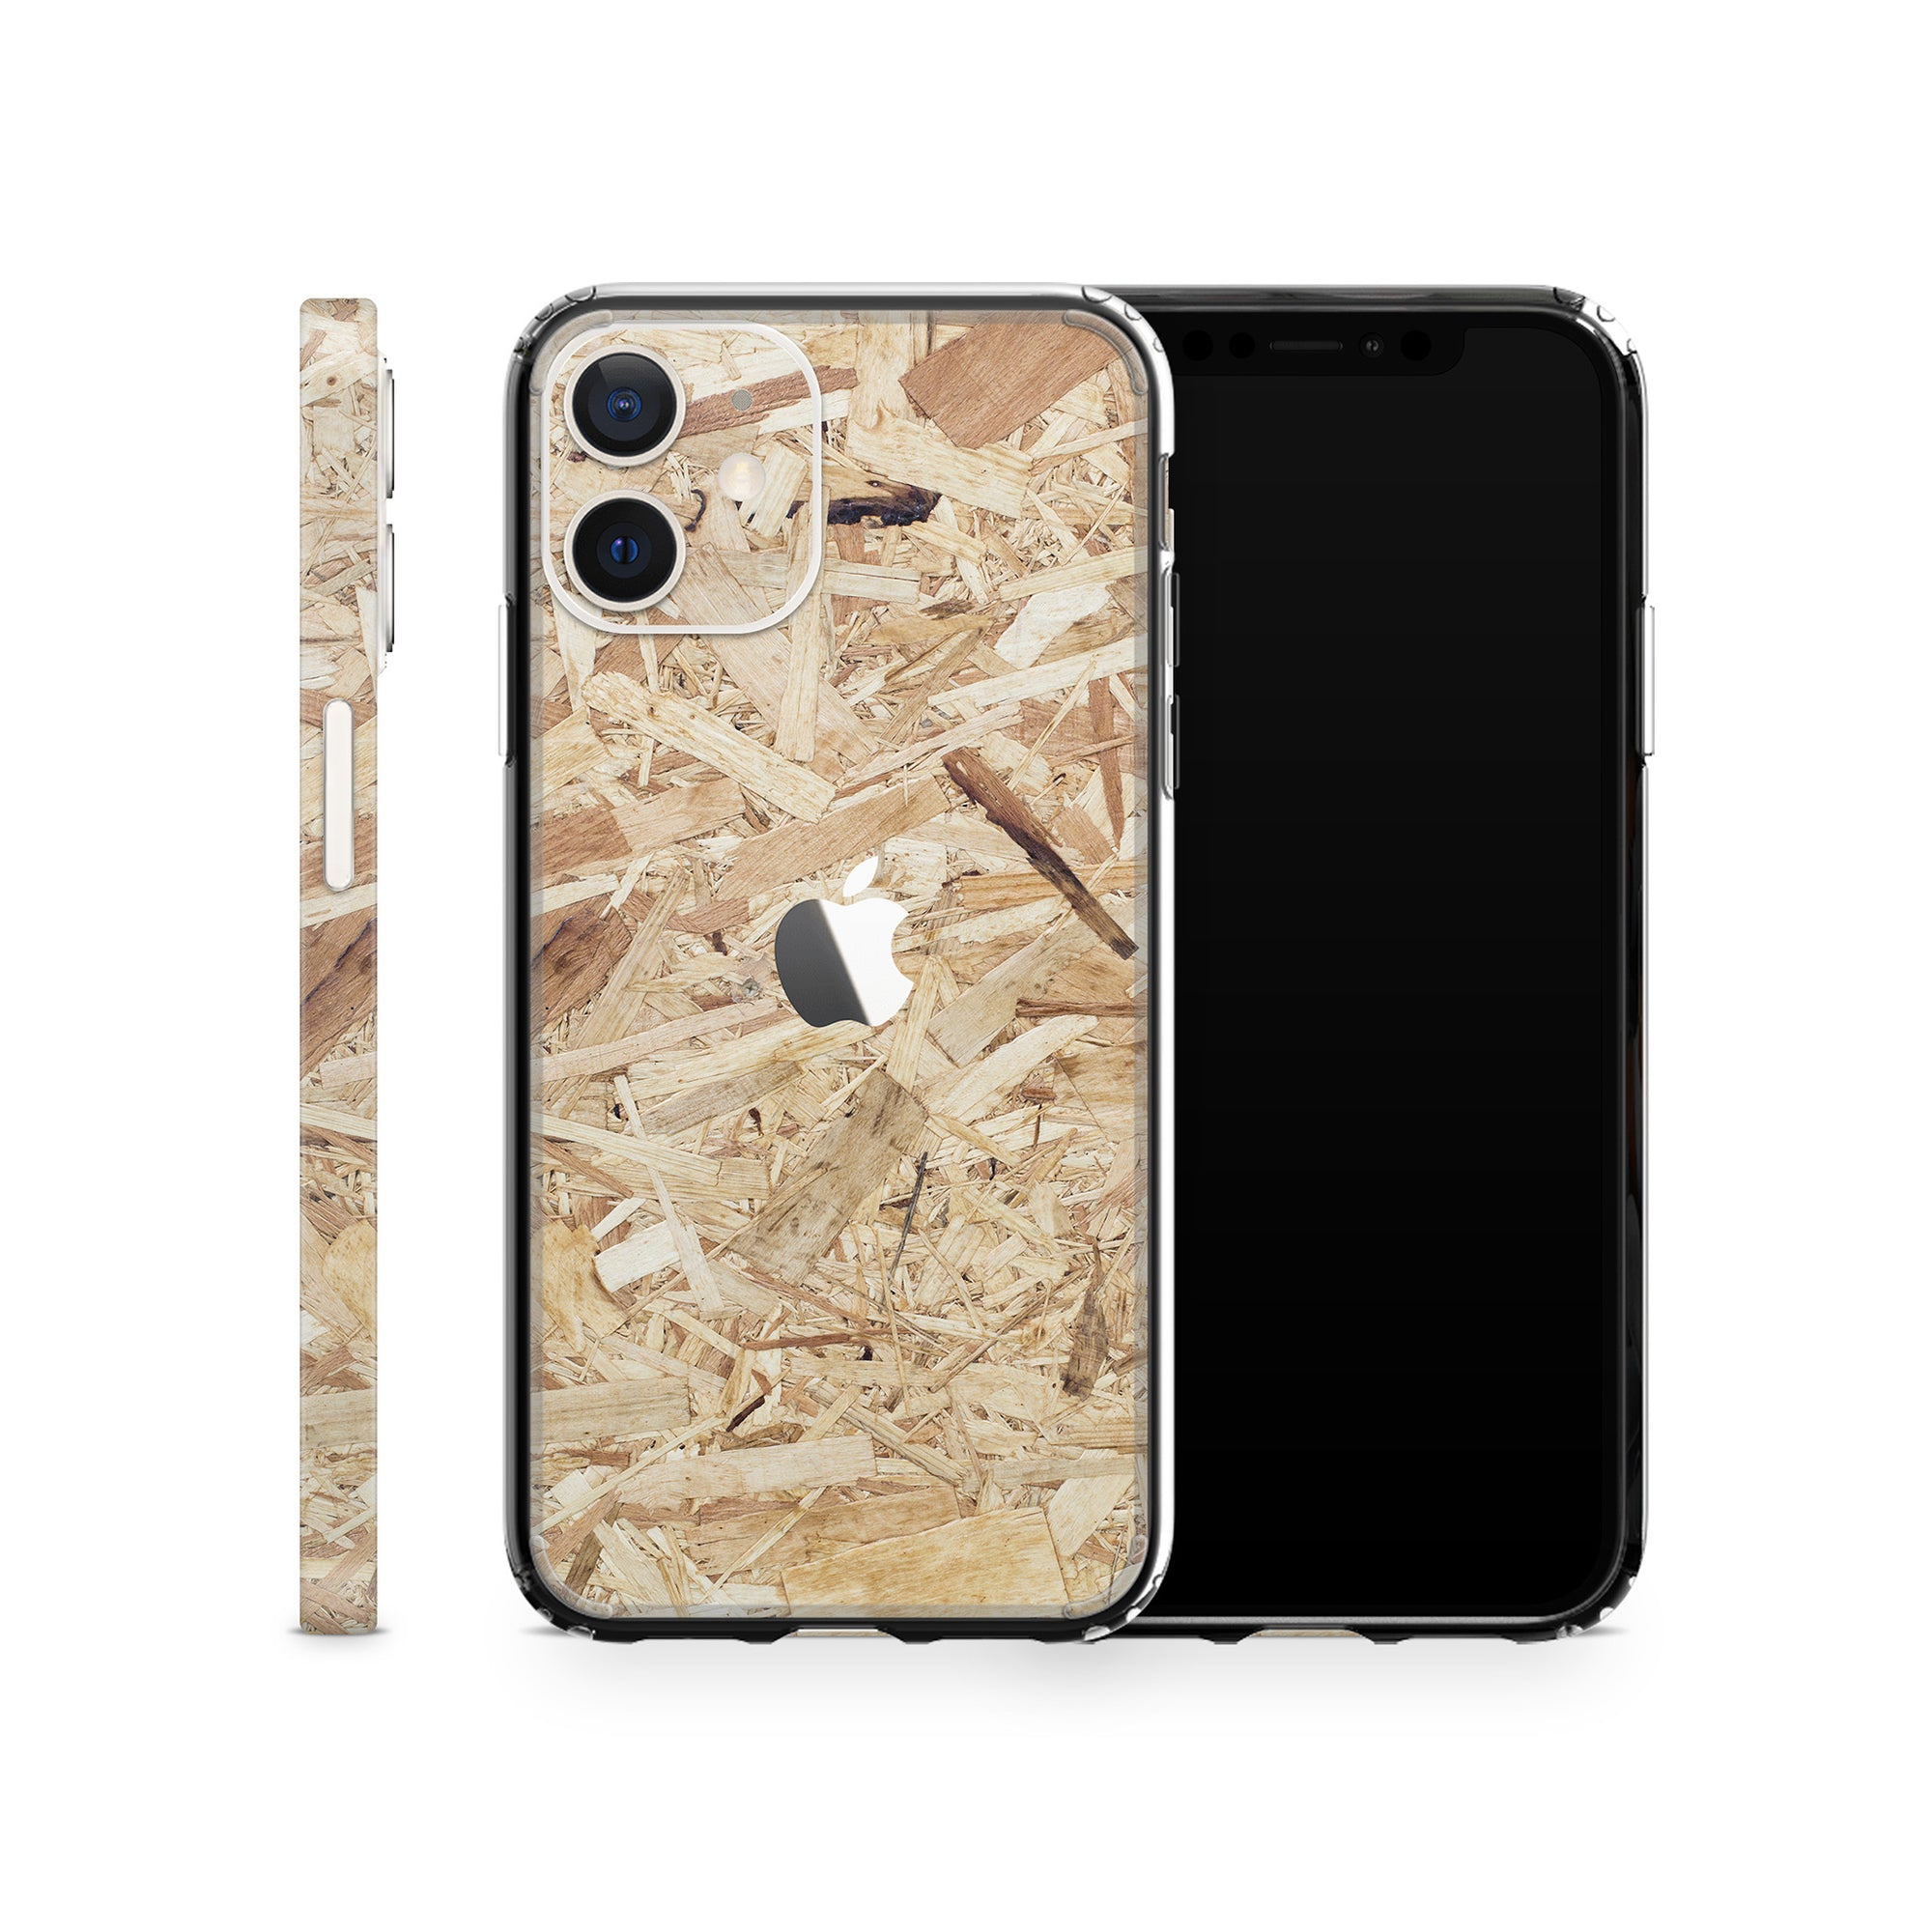 iPhone Case 12 Plywood